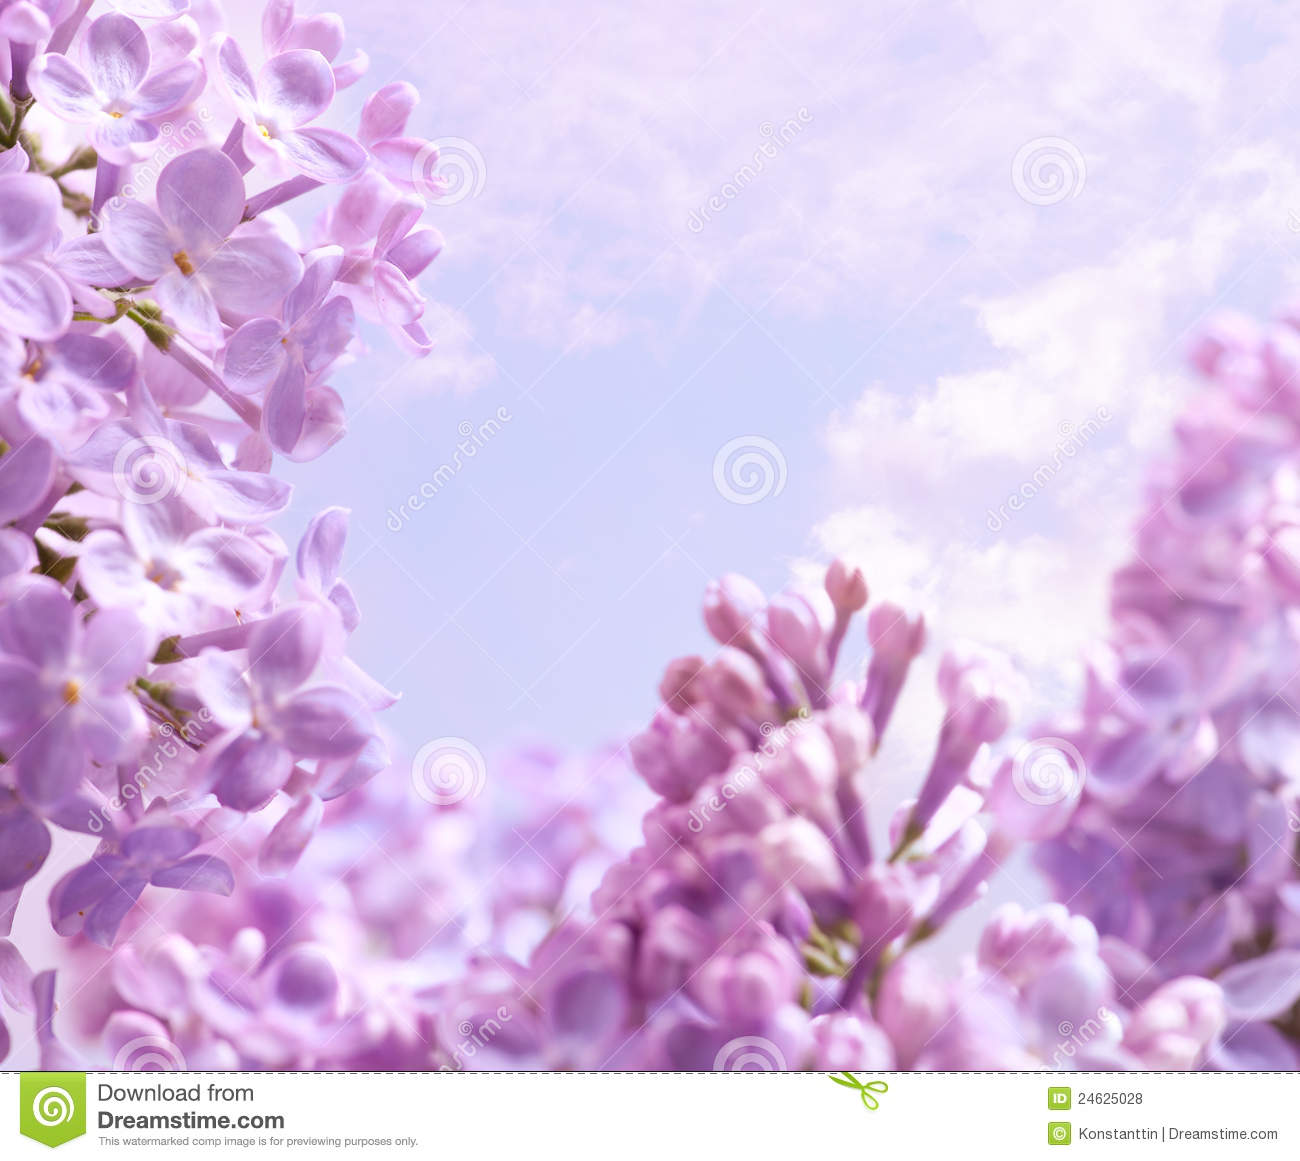 Spring lilac flower background. Spring flowers.